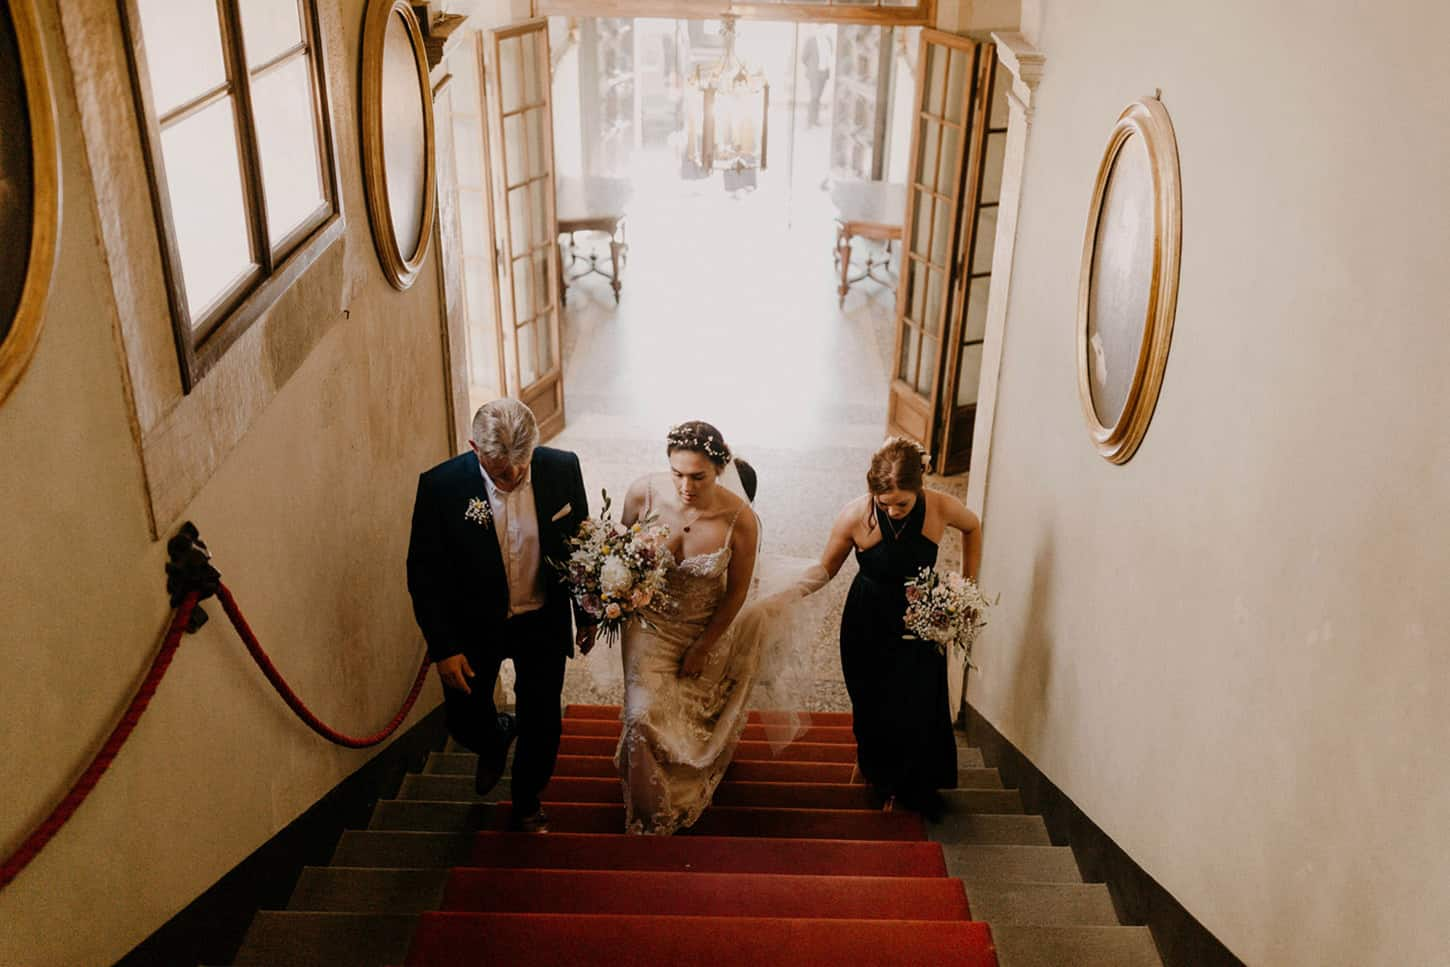 064-kieran-laura-italy-lucca-destination-wedding